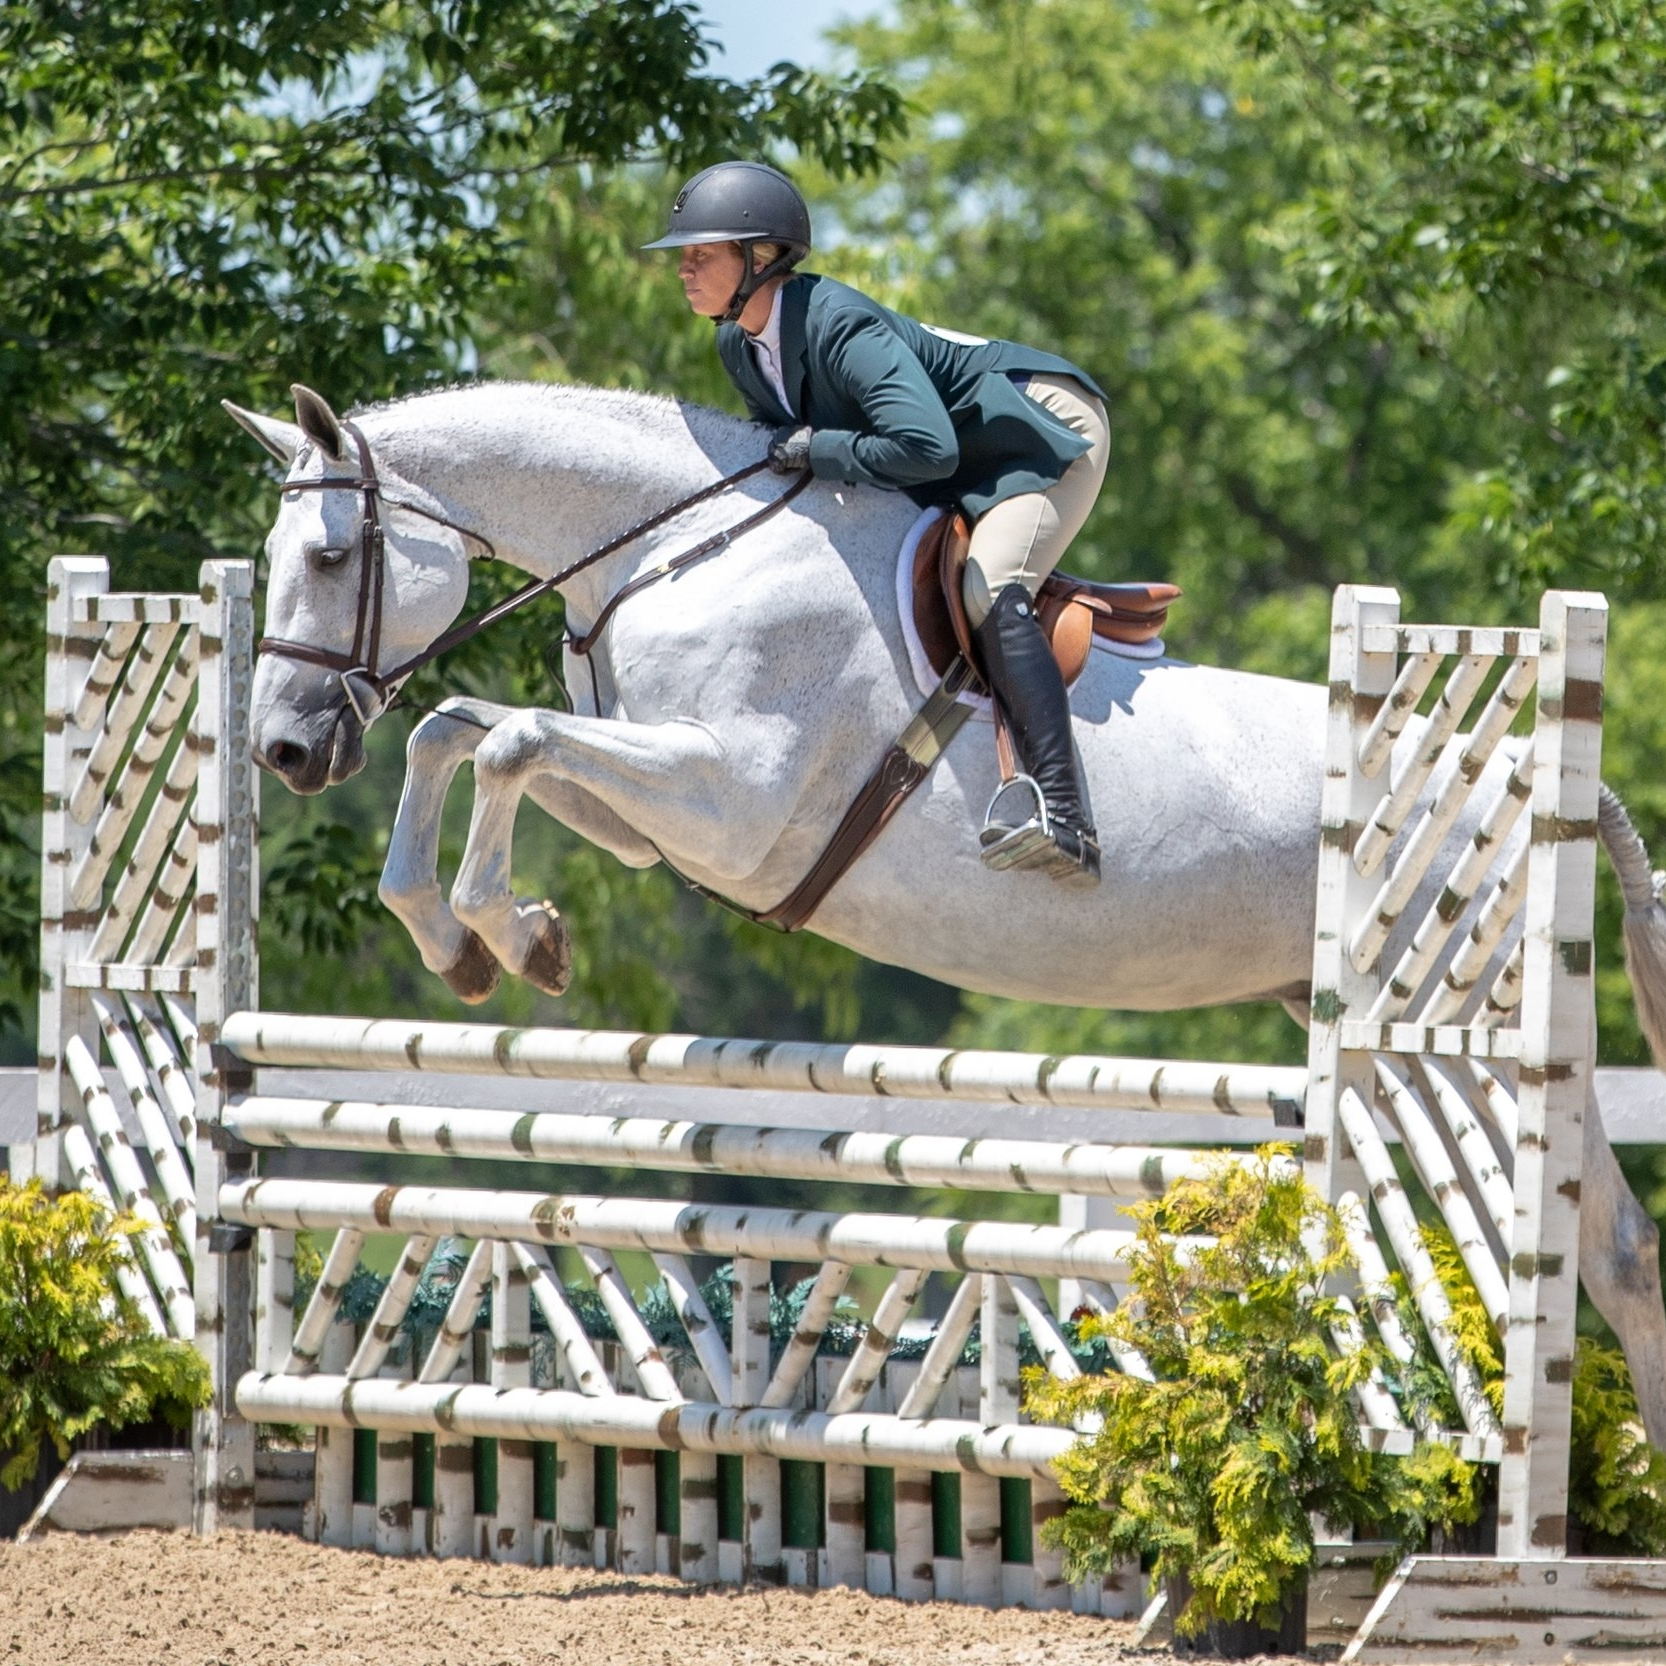 2018-06-21-1326-caitlyn_shiels_and_cakewalk_by_fine_art_horses_cp2_1973.jpg